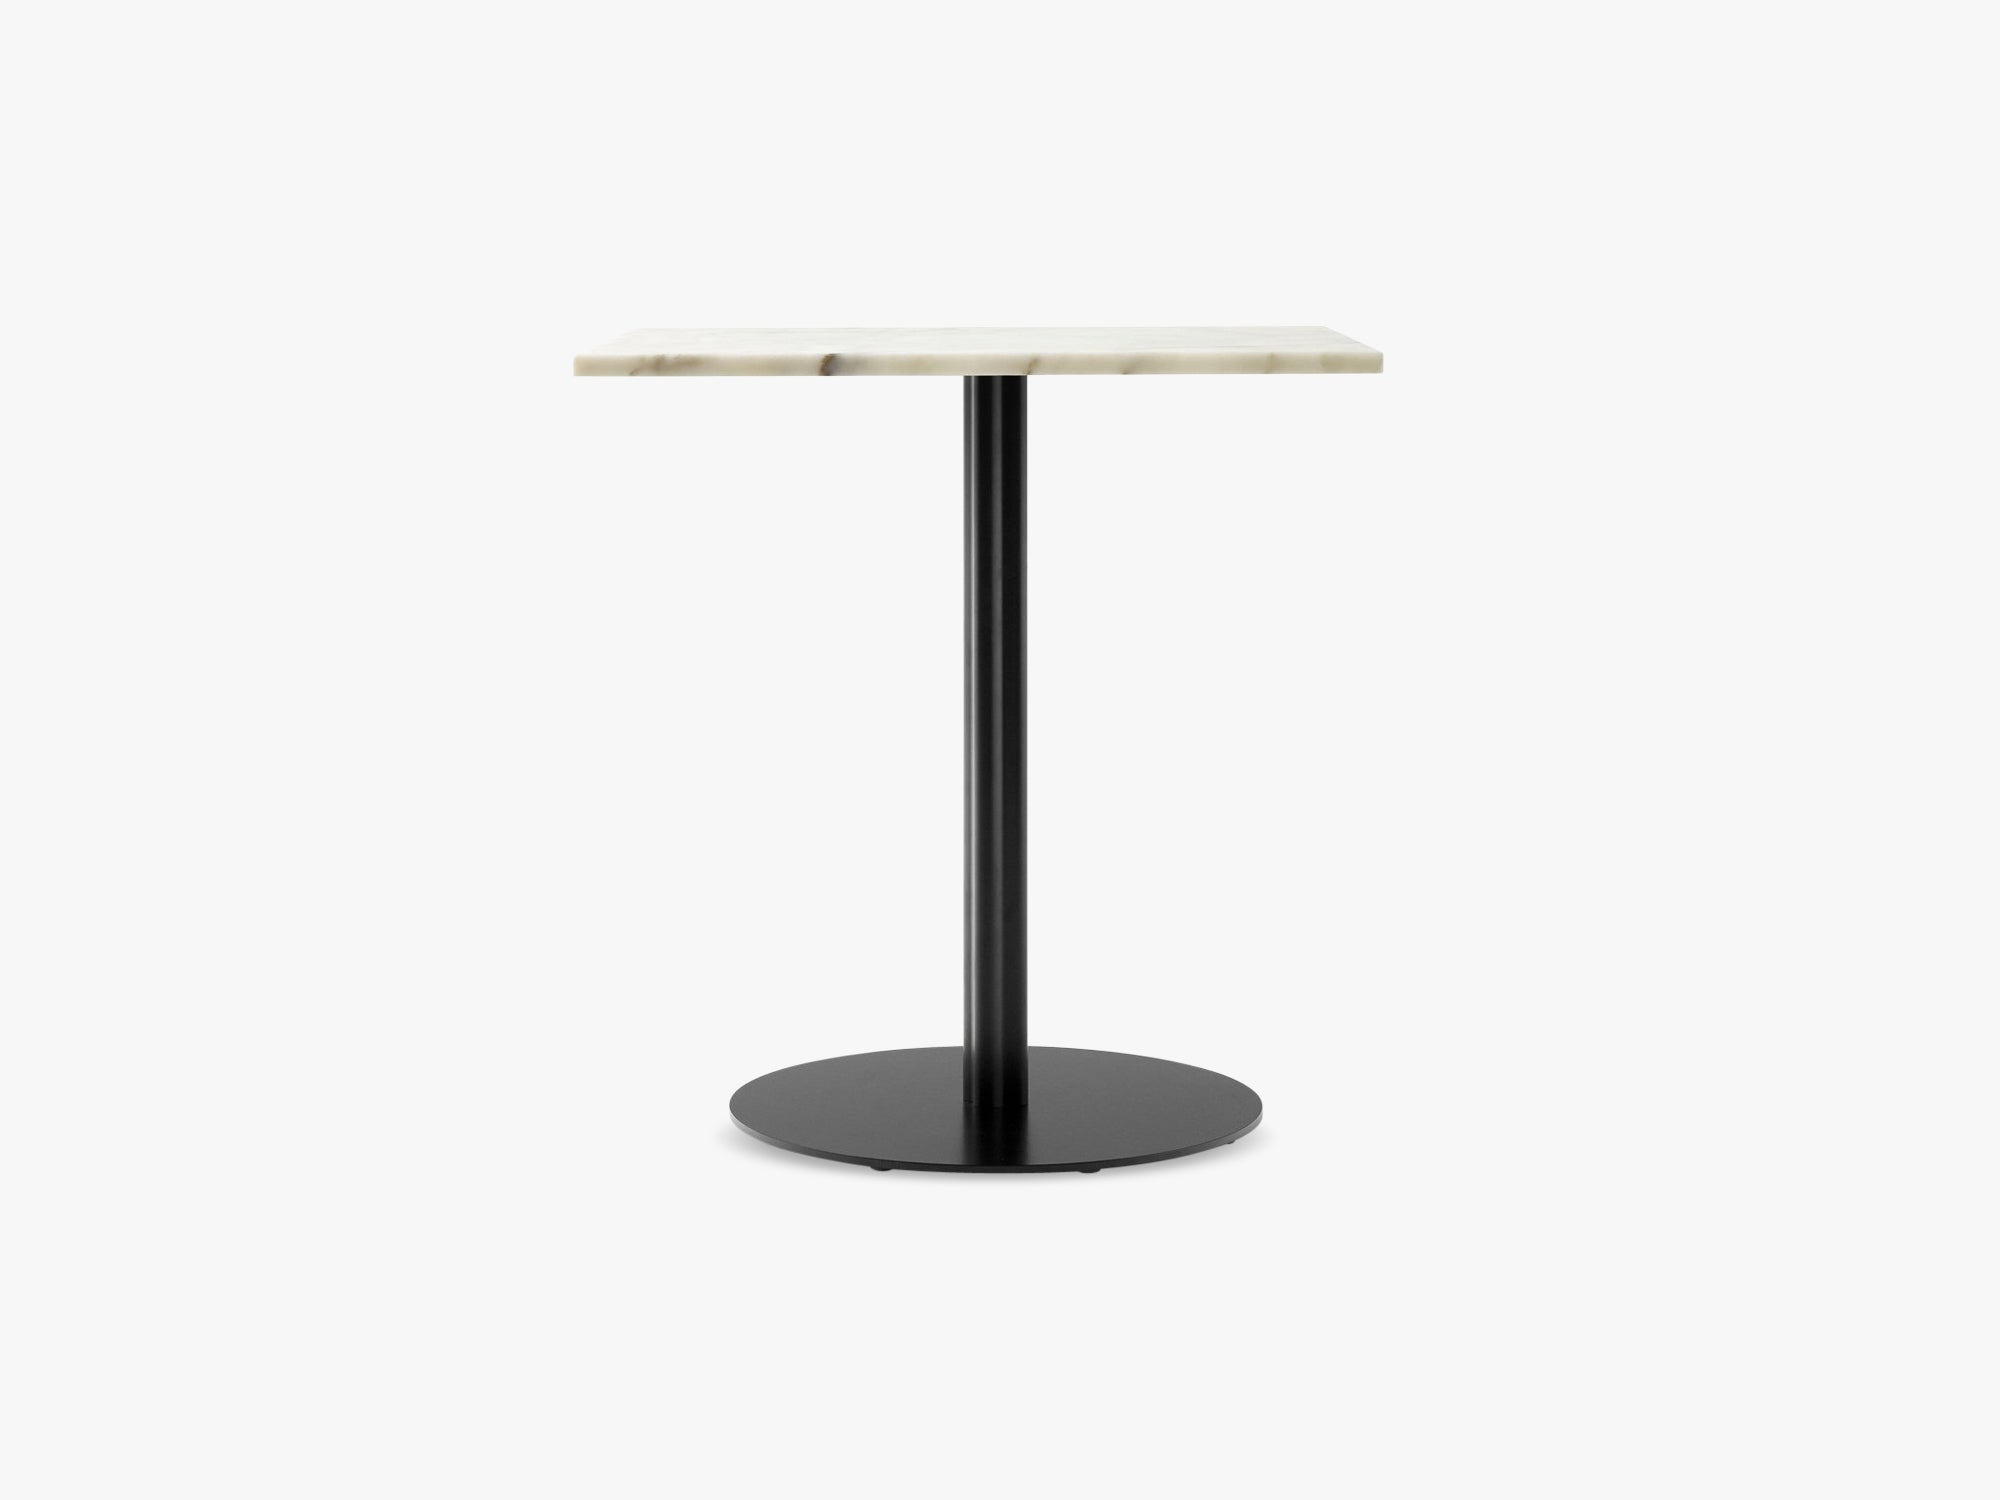 Harbour Column Dining Table 60x70 - Off White Marble Tabletop with Black Base fra Menu